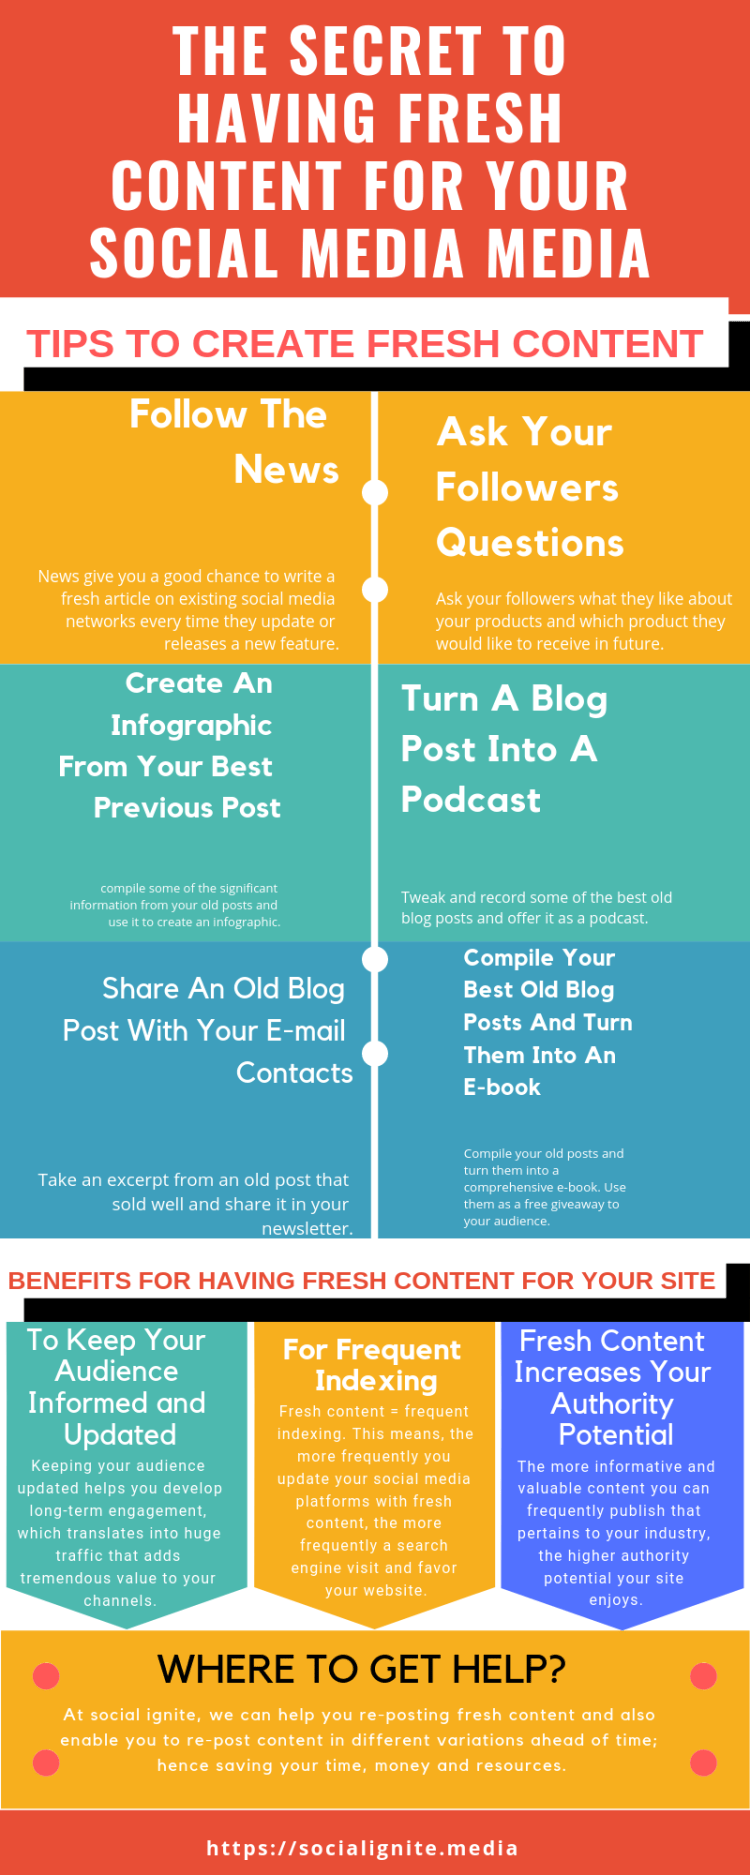 Why Press Shouldnt Be Your Source For >> The Secret To Having Fresh Content For Your Social Media